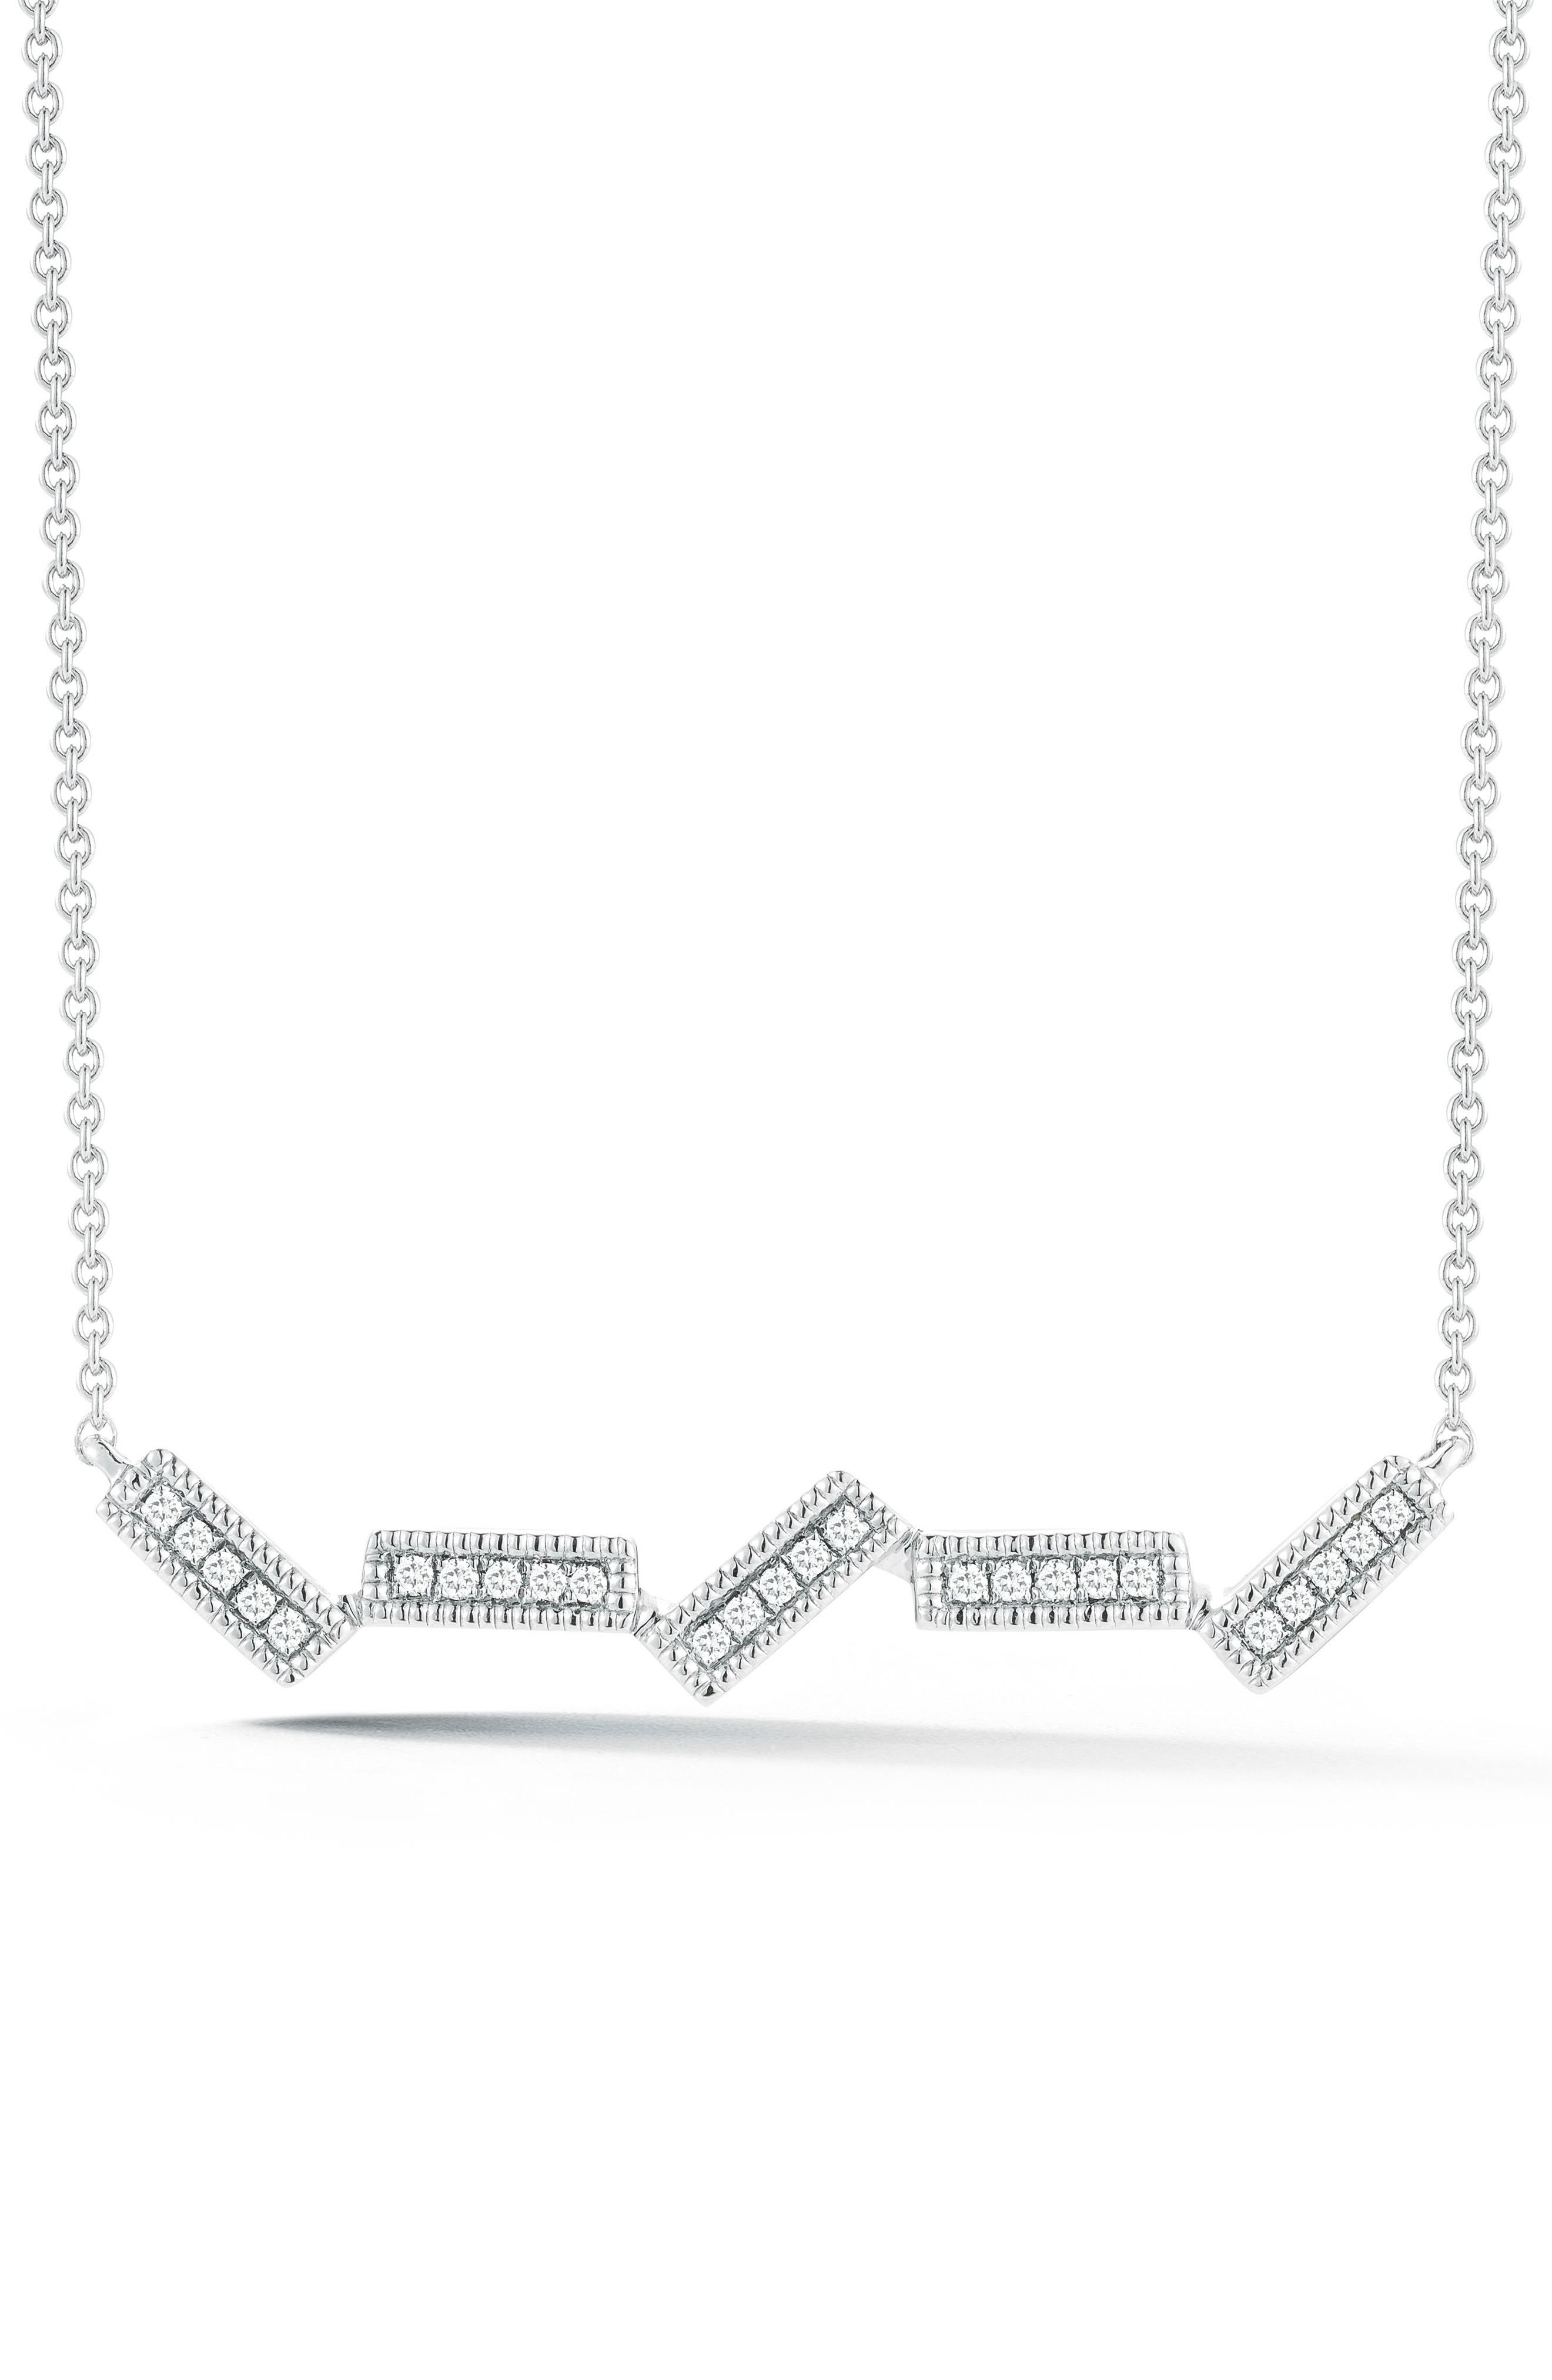 Main Image - Dana Rebecca Designs Sylvie Rose Five-Bar Diamond Pendant Necklace